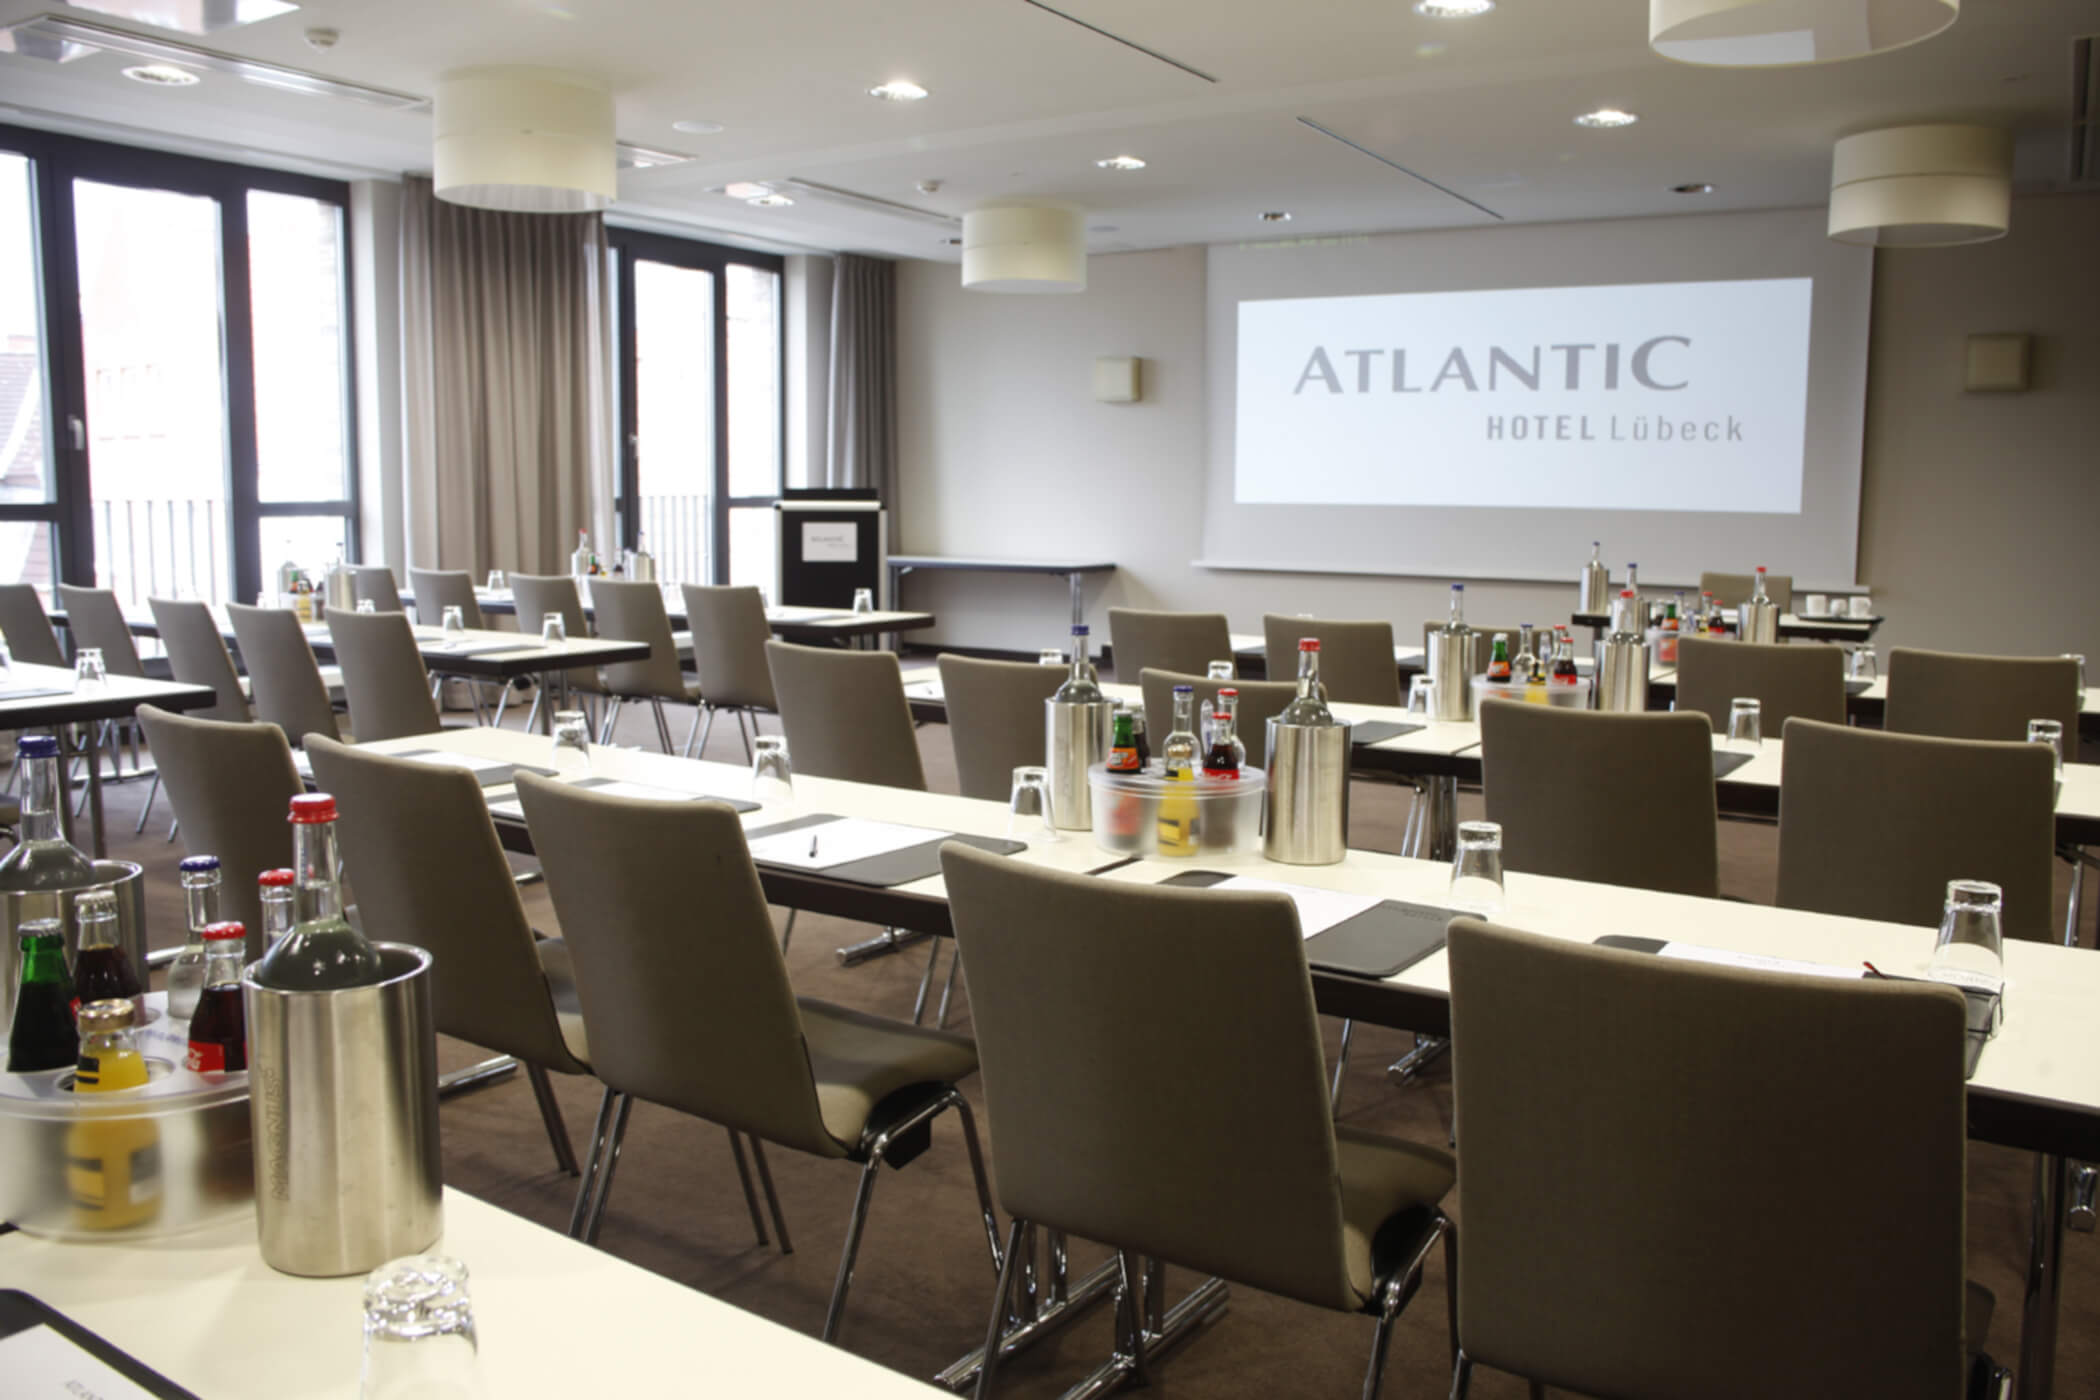 Function room conference 1 at ATLANTIC Hotel Lübeck